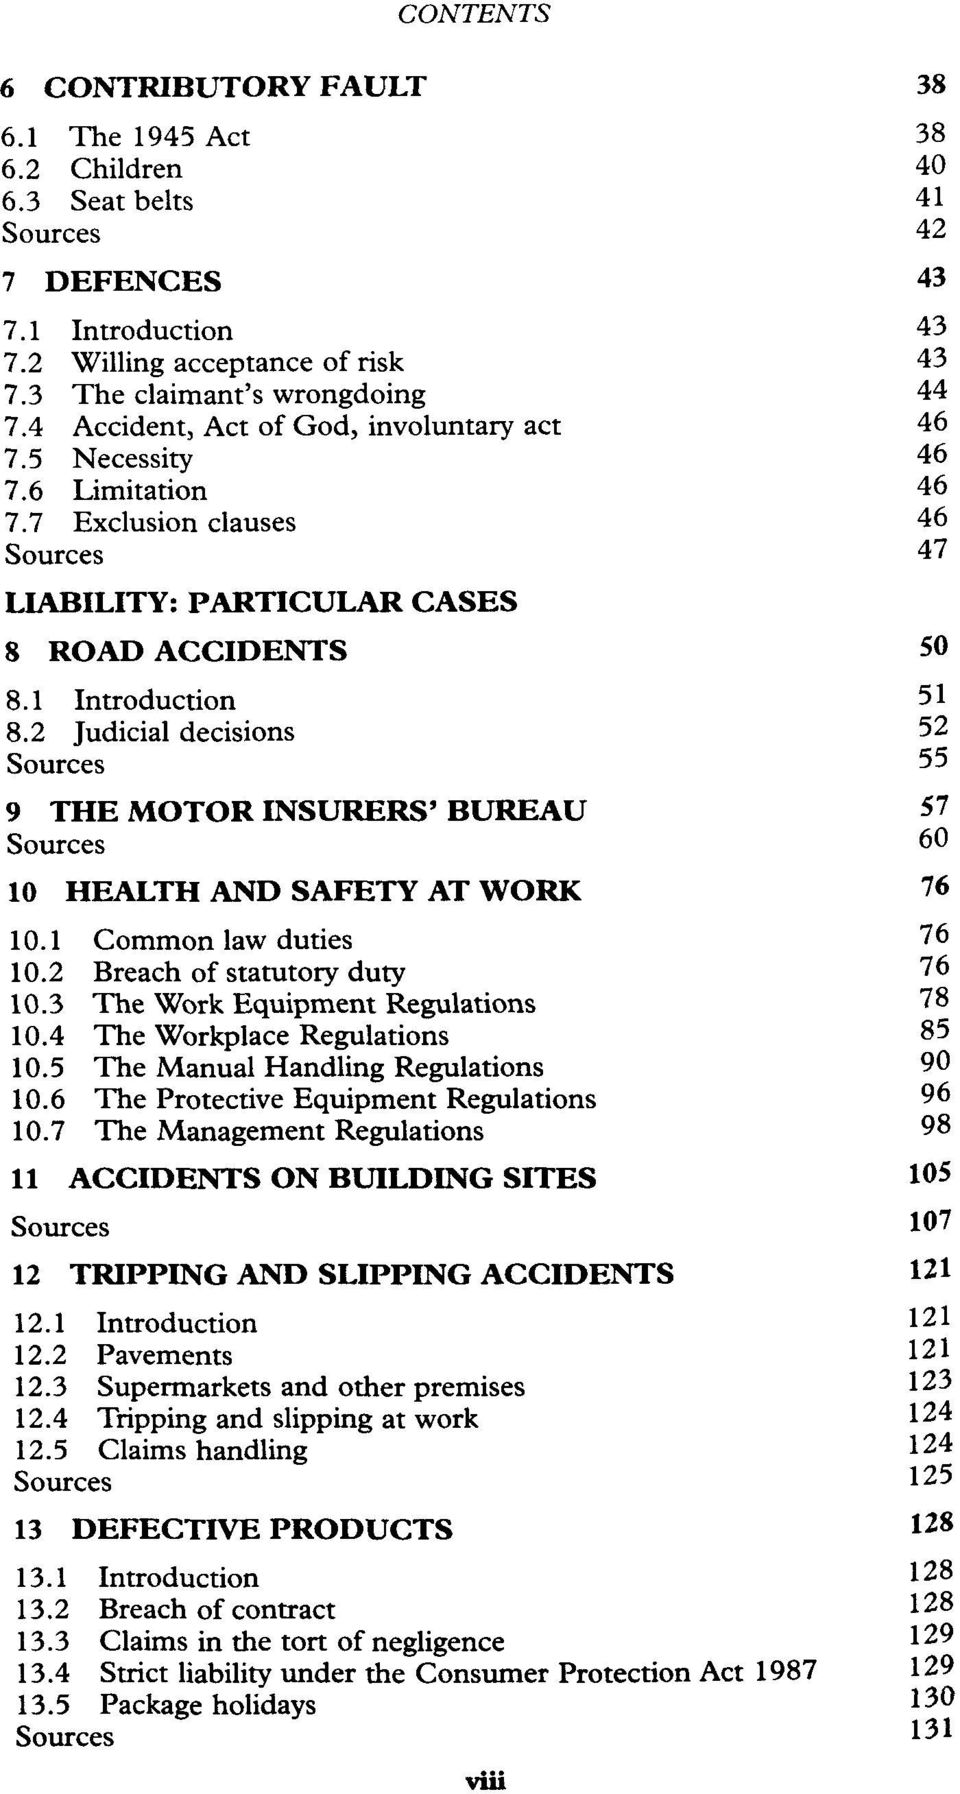 2 Judicial decisions 52 Sources 55 9 THE MOTOR INSURERS'BUREAU 57 Sources 60 10 HEALTH AND SAFETY AT WORK 76 10.1 Common law duties 76 10.2 Breach of statutory duty 76 10.